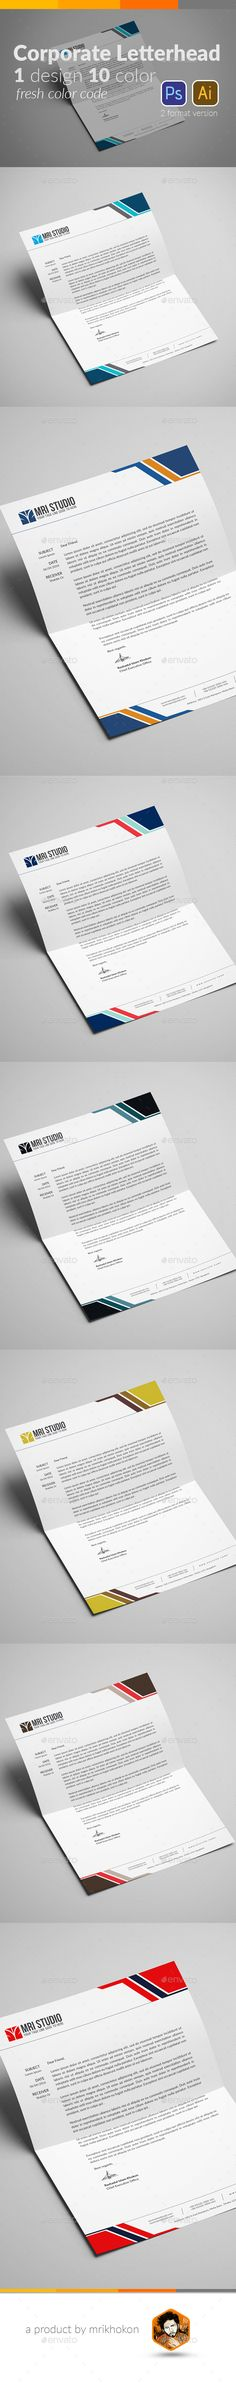 Letterhead design template psd letterhead design templates letterhead design template psd letterhead design templates pinterest letterhead design template and letterhead examples spiritdancerdesigns Image collections